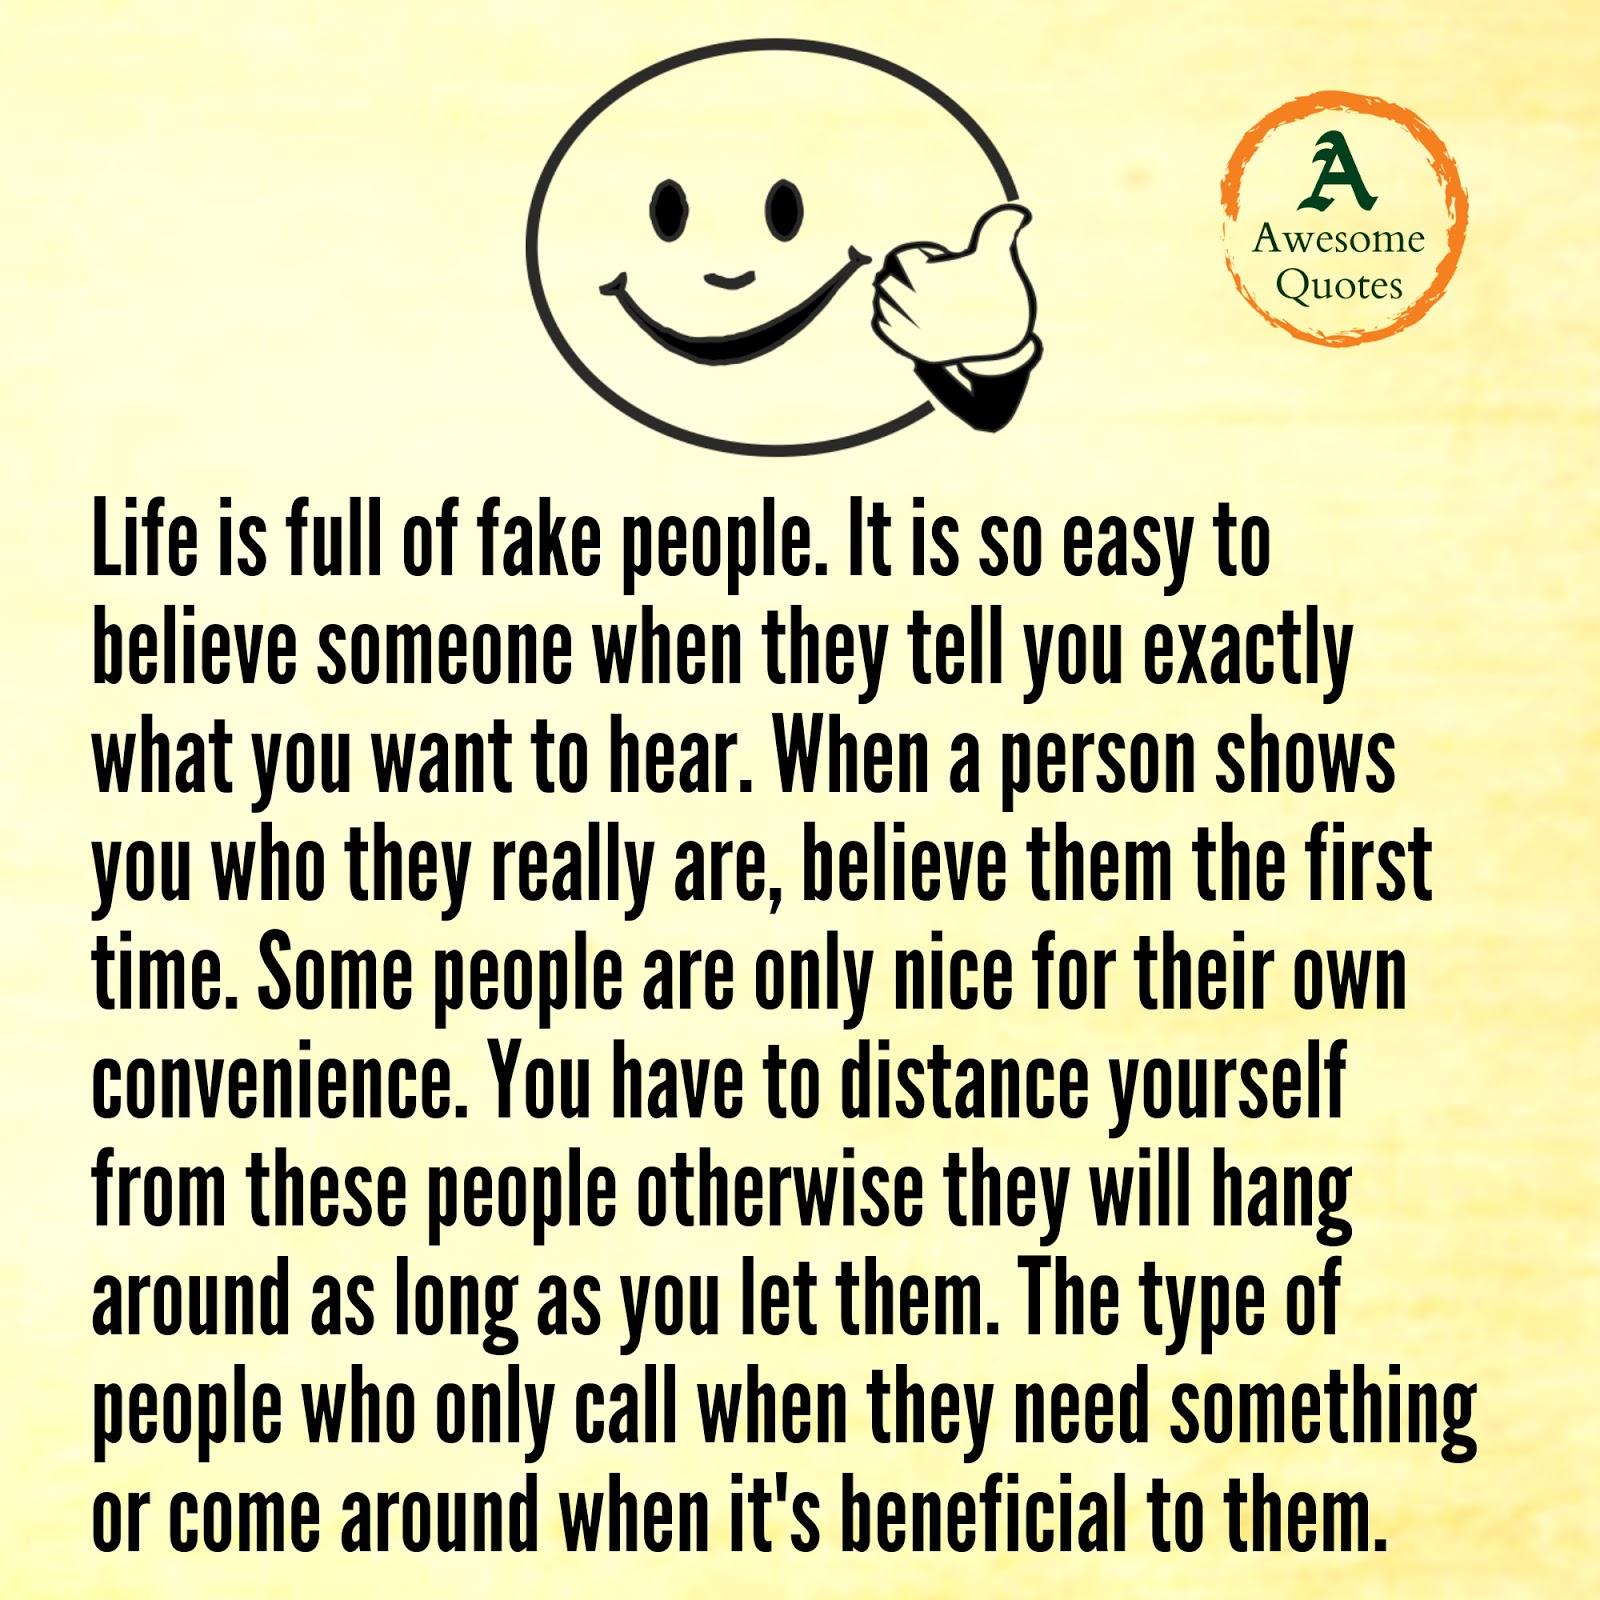 Life Is Full Of Fake People Quotes Guidomeyer